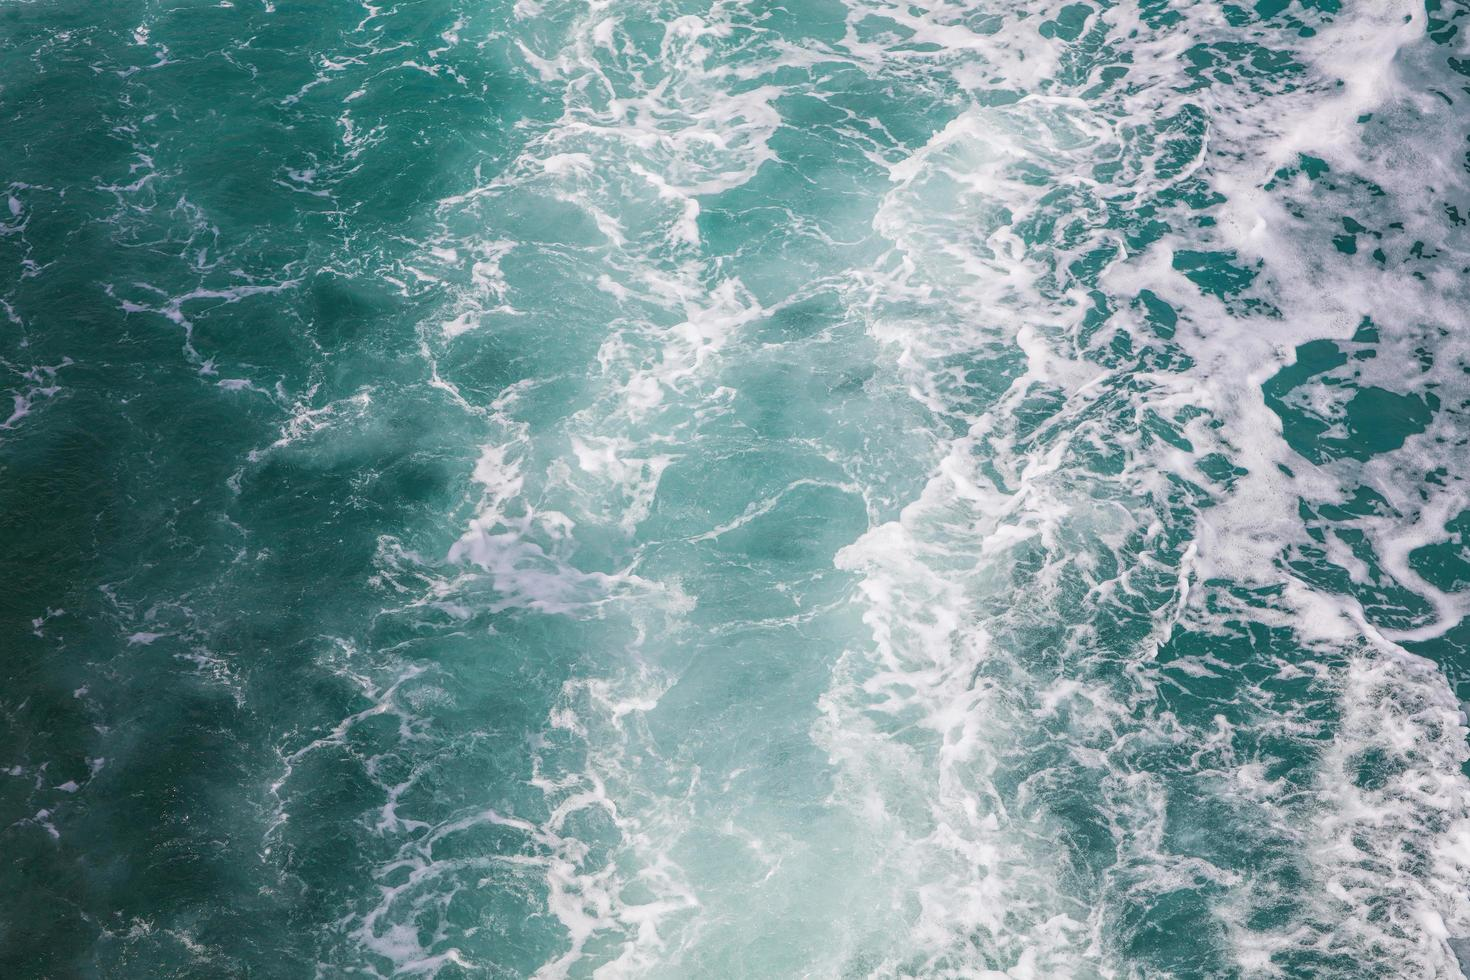 Close up of bubbles from a ferry boat in the sea, Seawater ship trail with a foamy wave photo